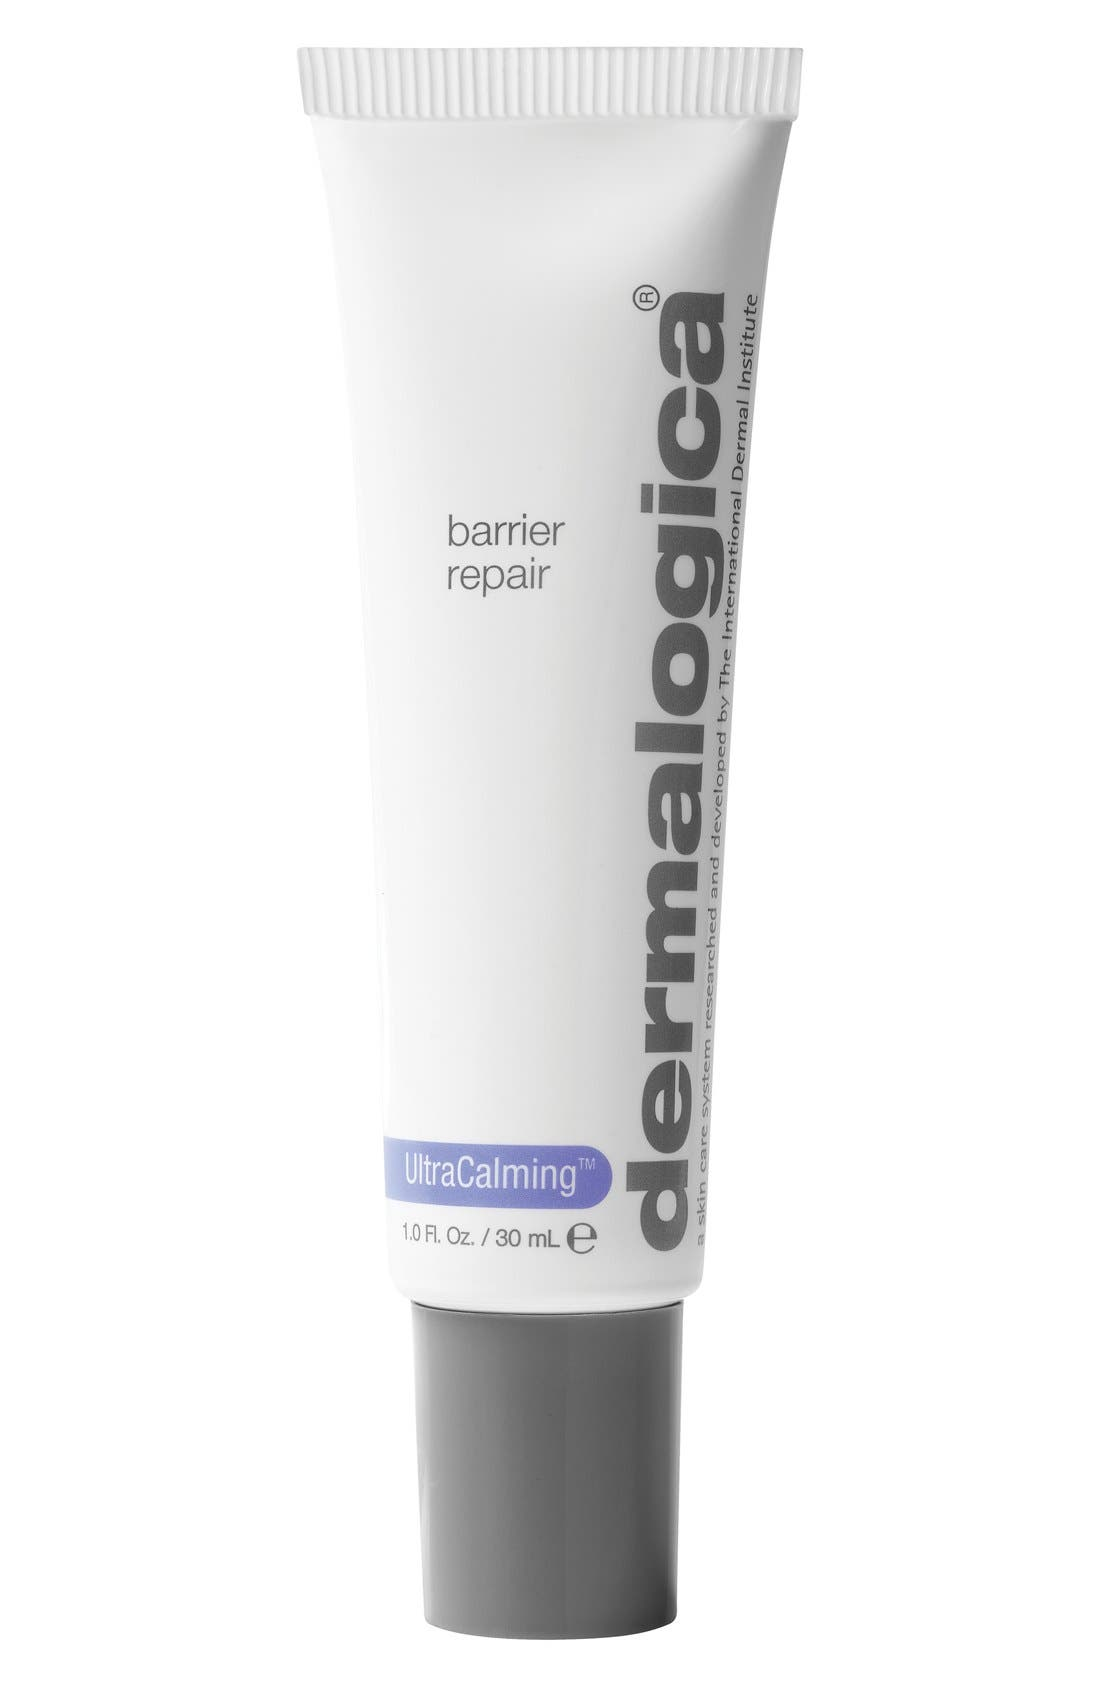 dermalogica® Barrier Repair